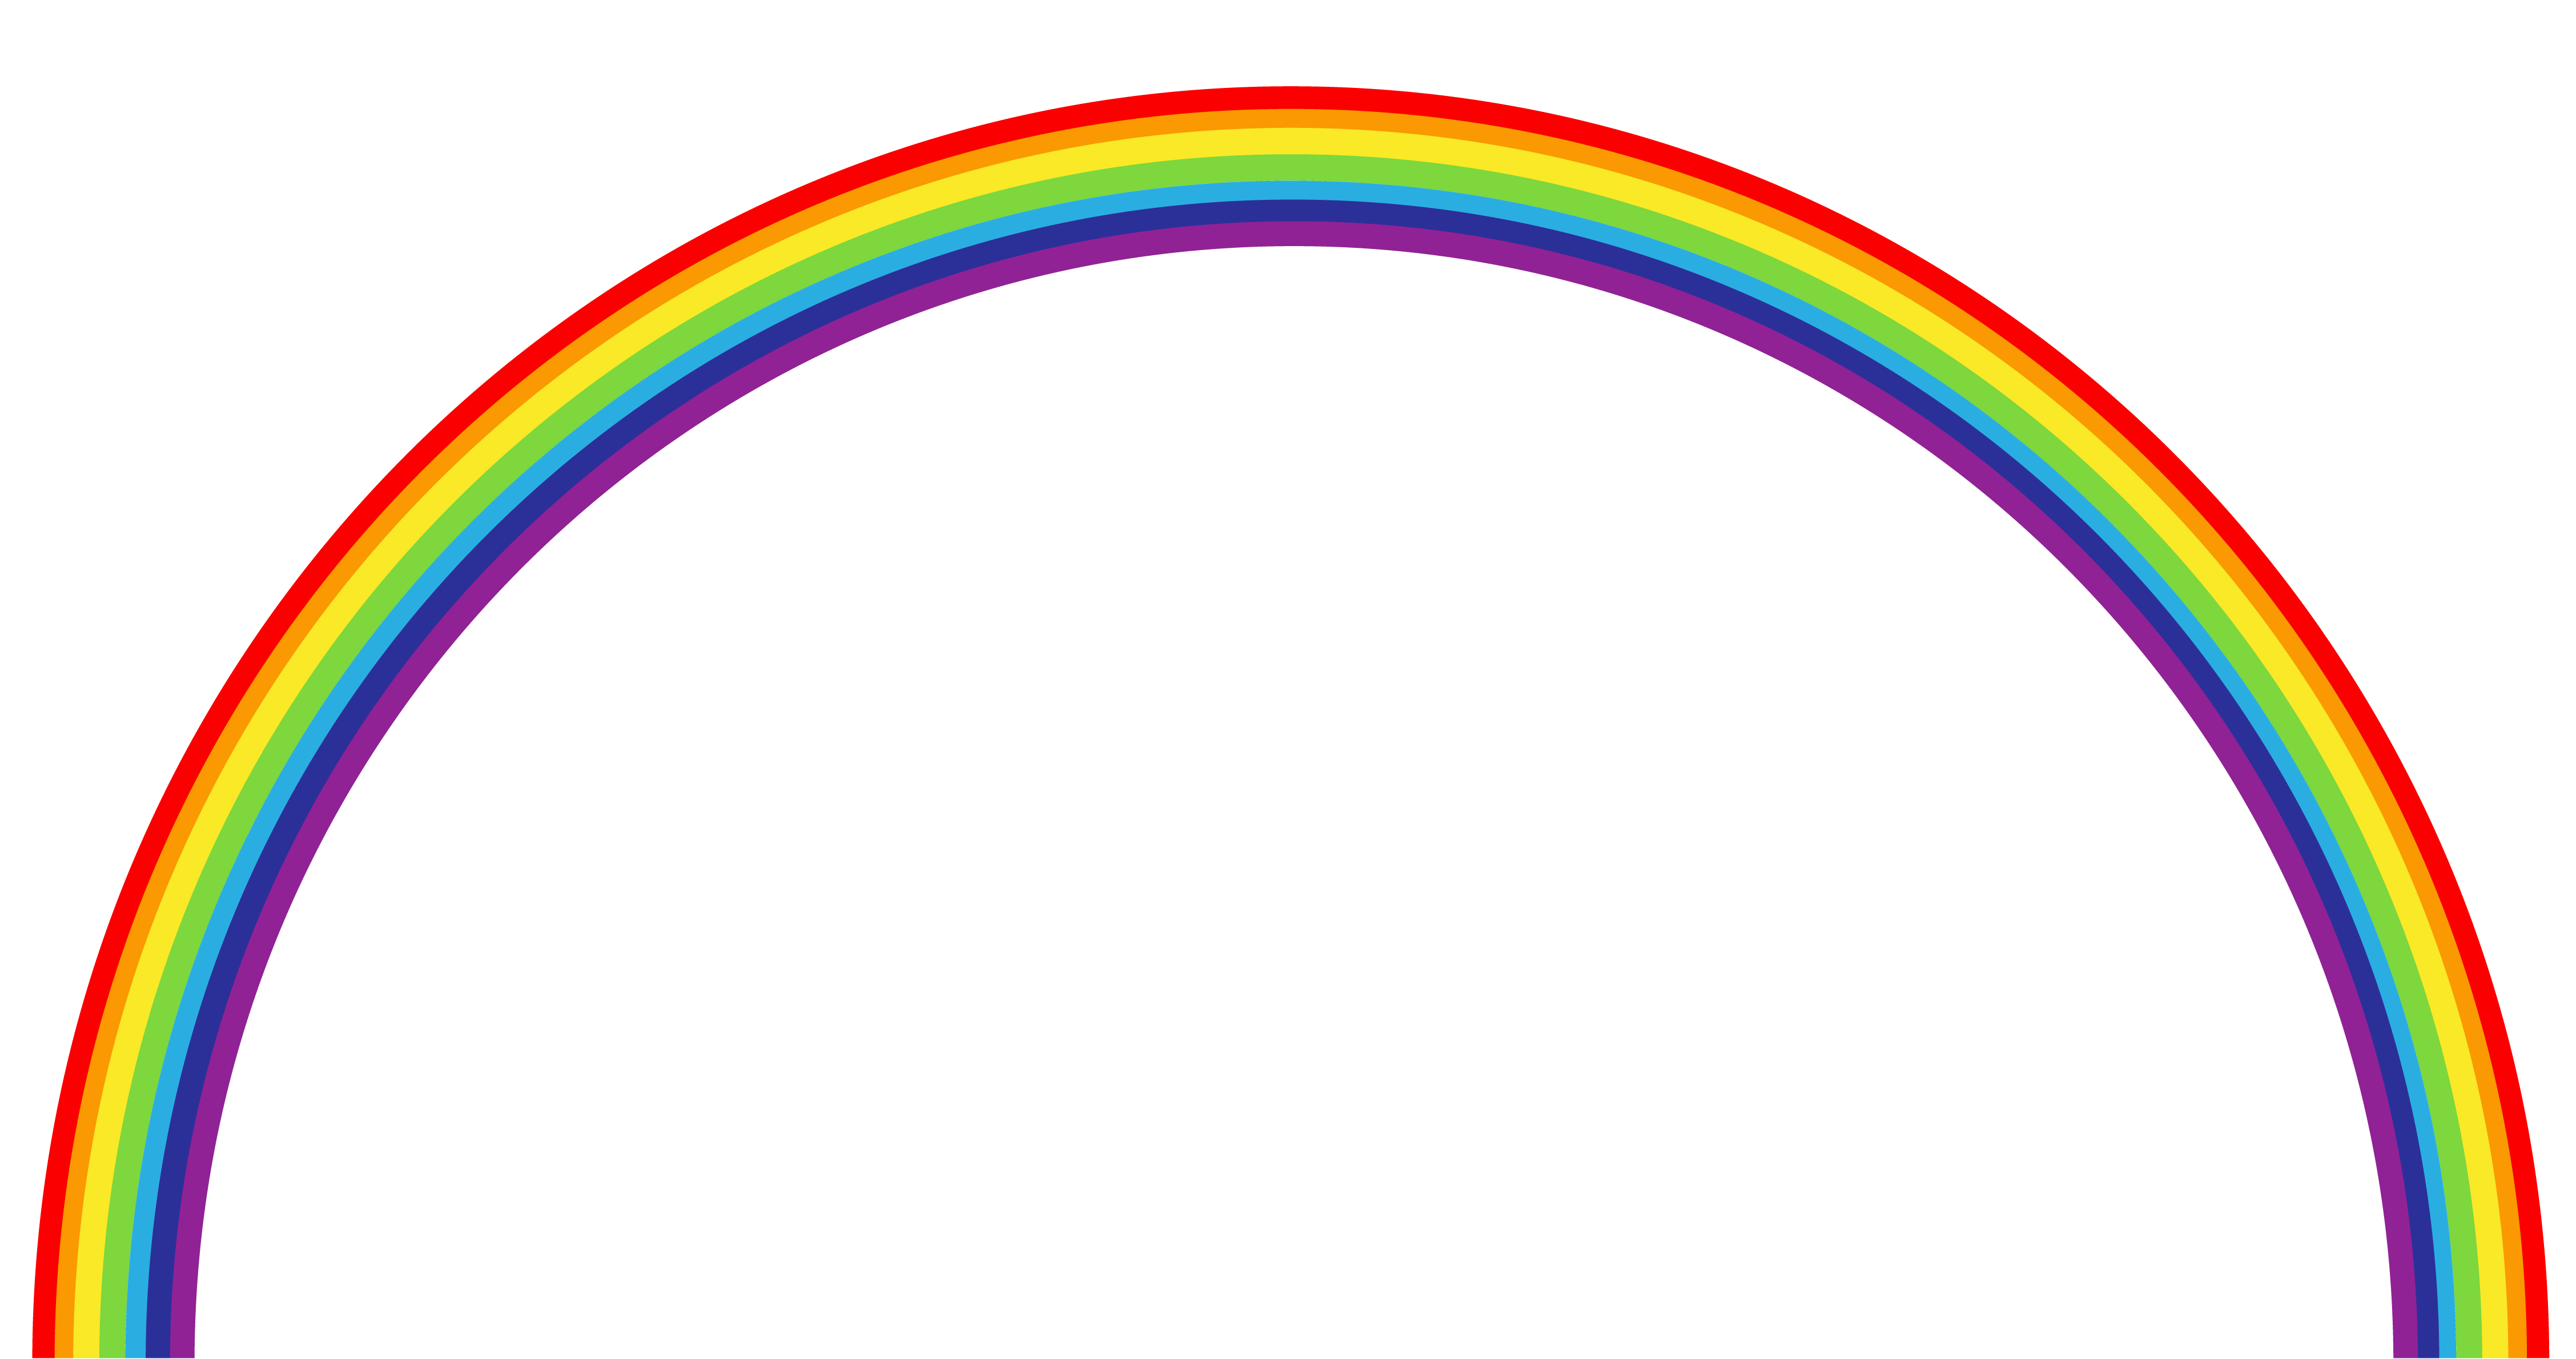 4511x2380 Rainbow Clipart For Kids Free Images 2 2